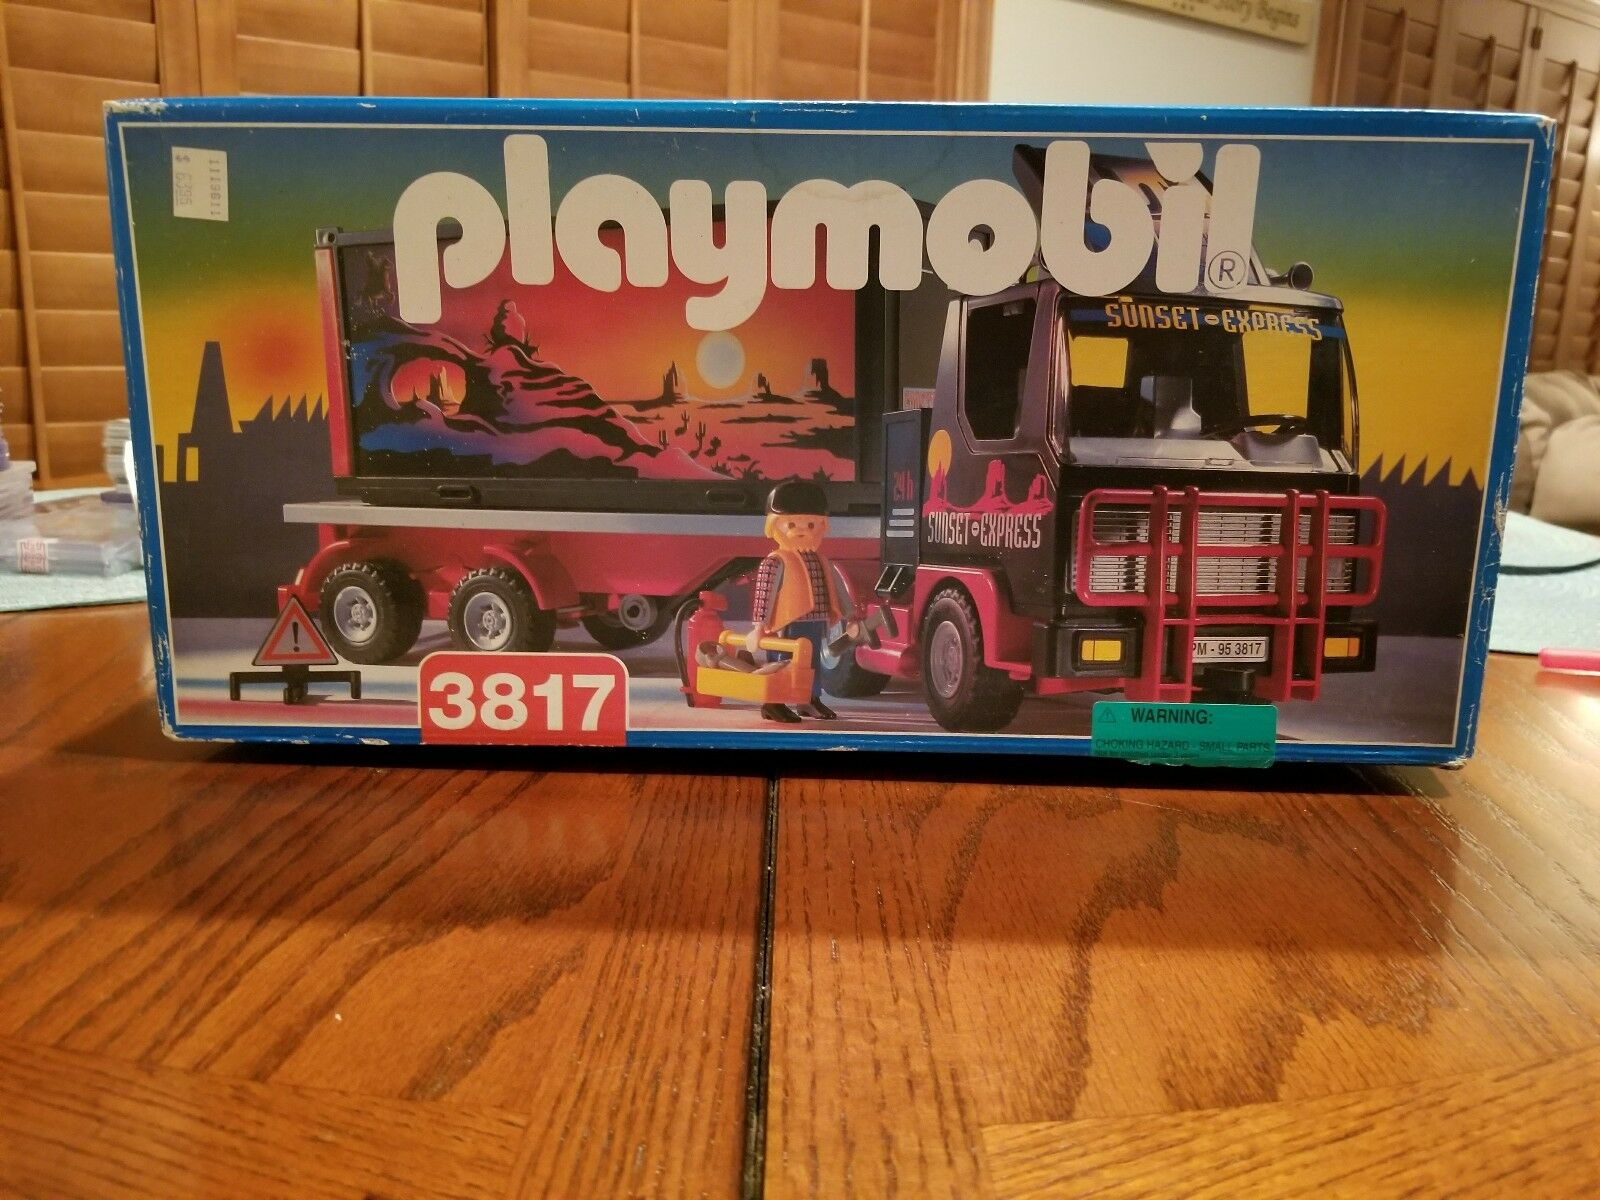 Sunset Express Tractor Trailer Playmobil  3817   RARE Vintage NIB  MUST SEE